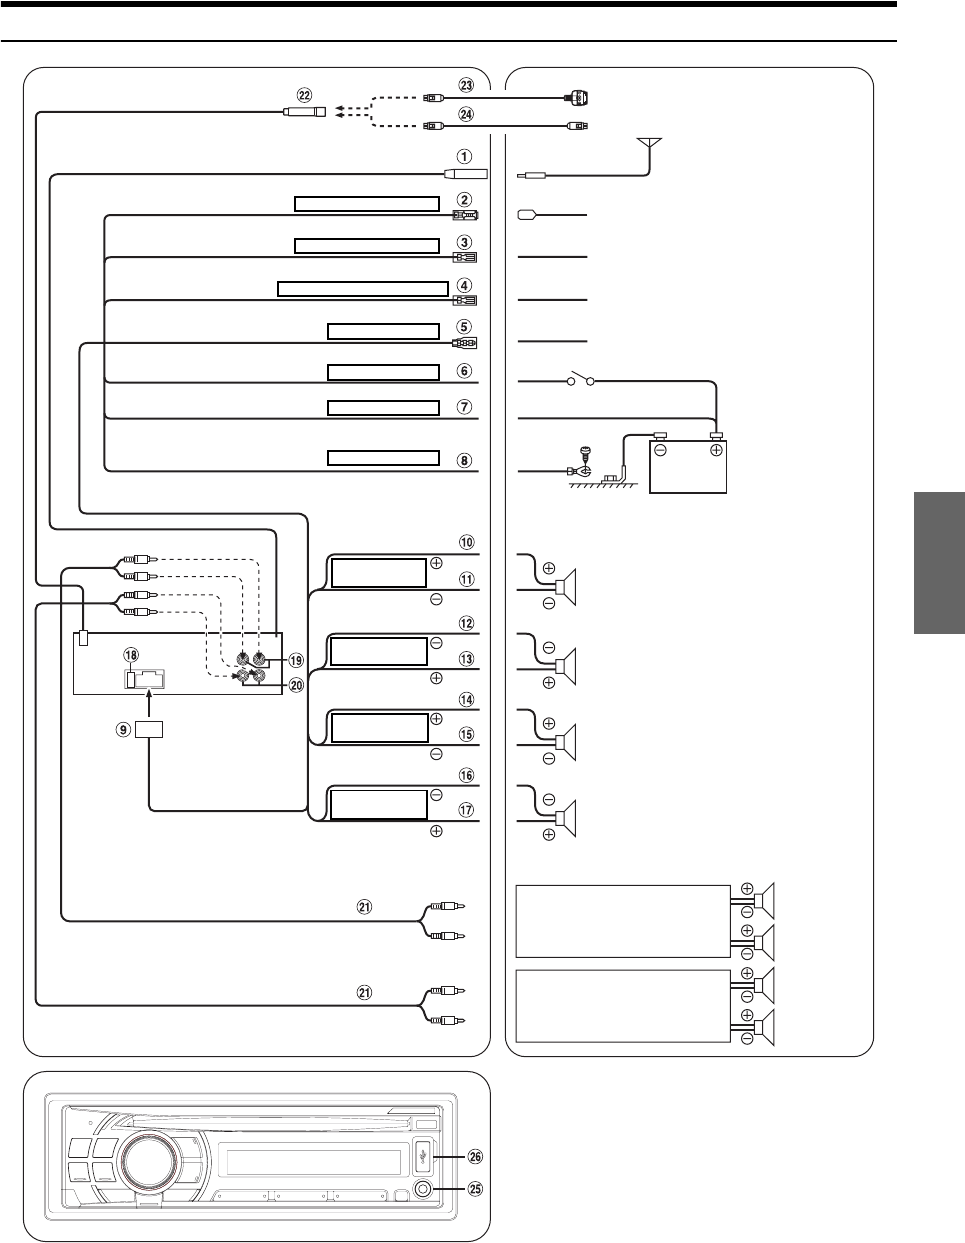 b11c451b 3cc1 41a1 925b 745f07e29109 bg1d?resize\\\\\\\=665%2C857 kenwood kdc 352u wiring diagram wiring diagrams on wiring diagram kenwood kdc mp445u wiring harness at eliteediting.co